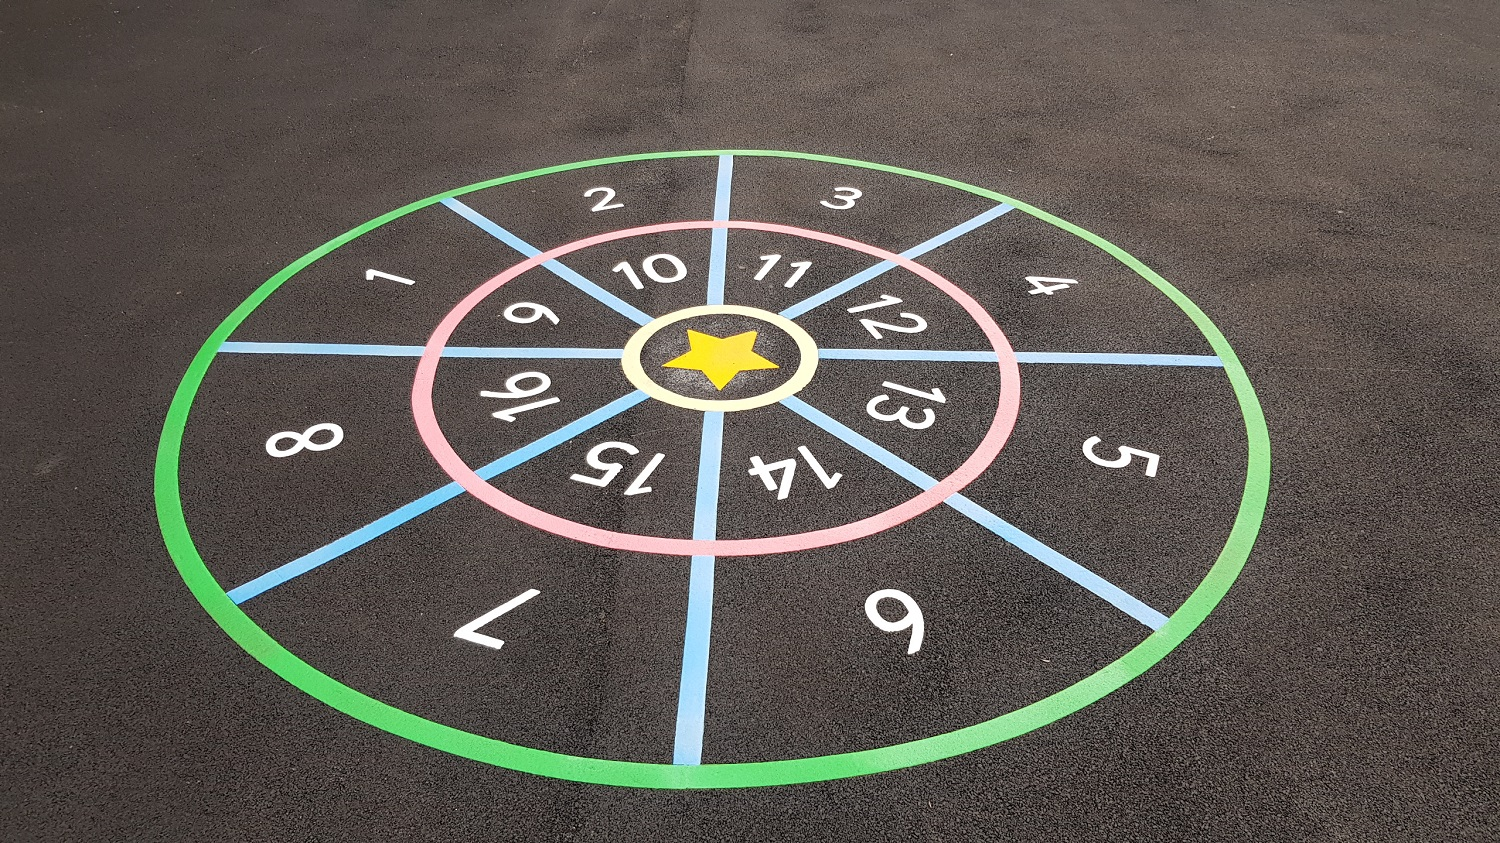 P15 Playground Tarmac Surfacing & Playground Markings at Ashover Primary School in Ashover